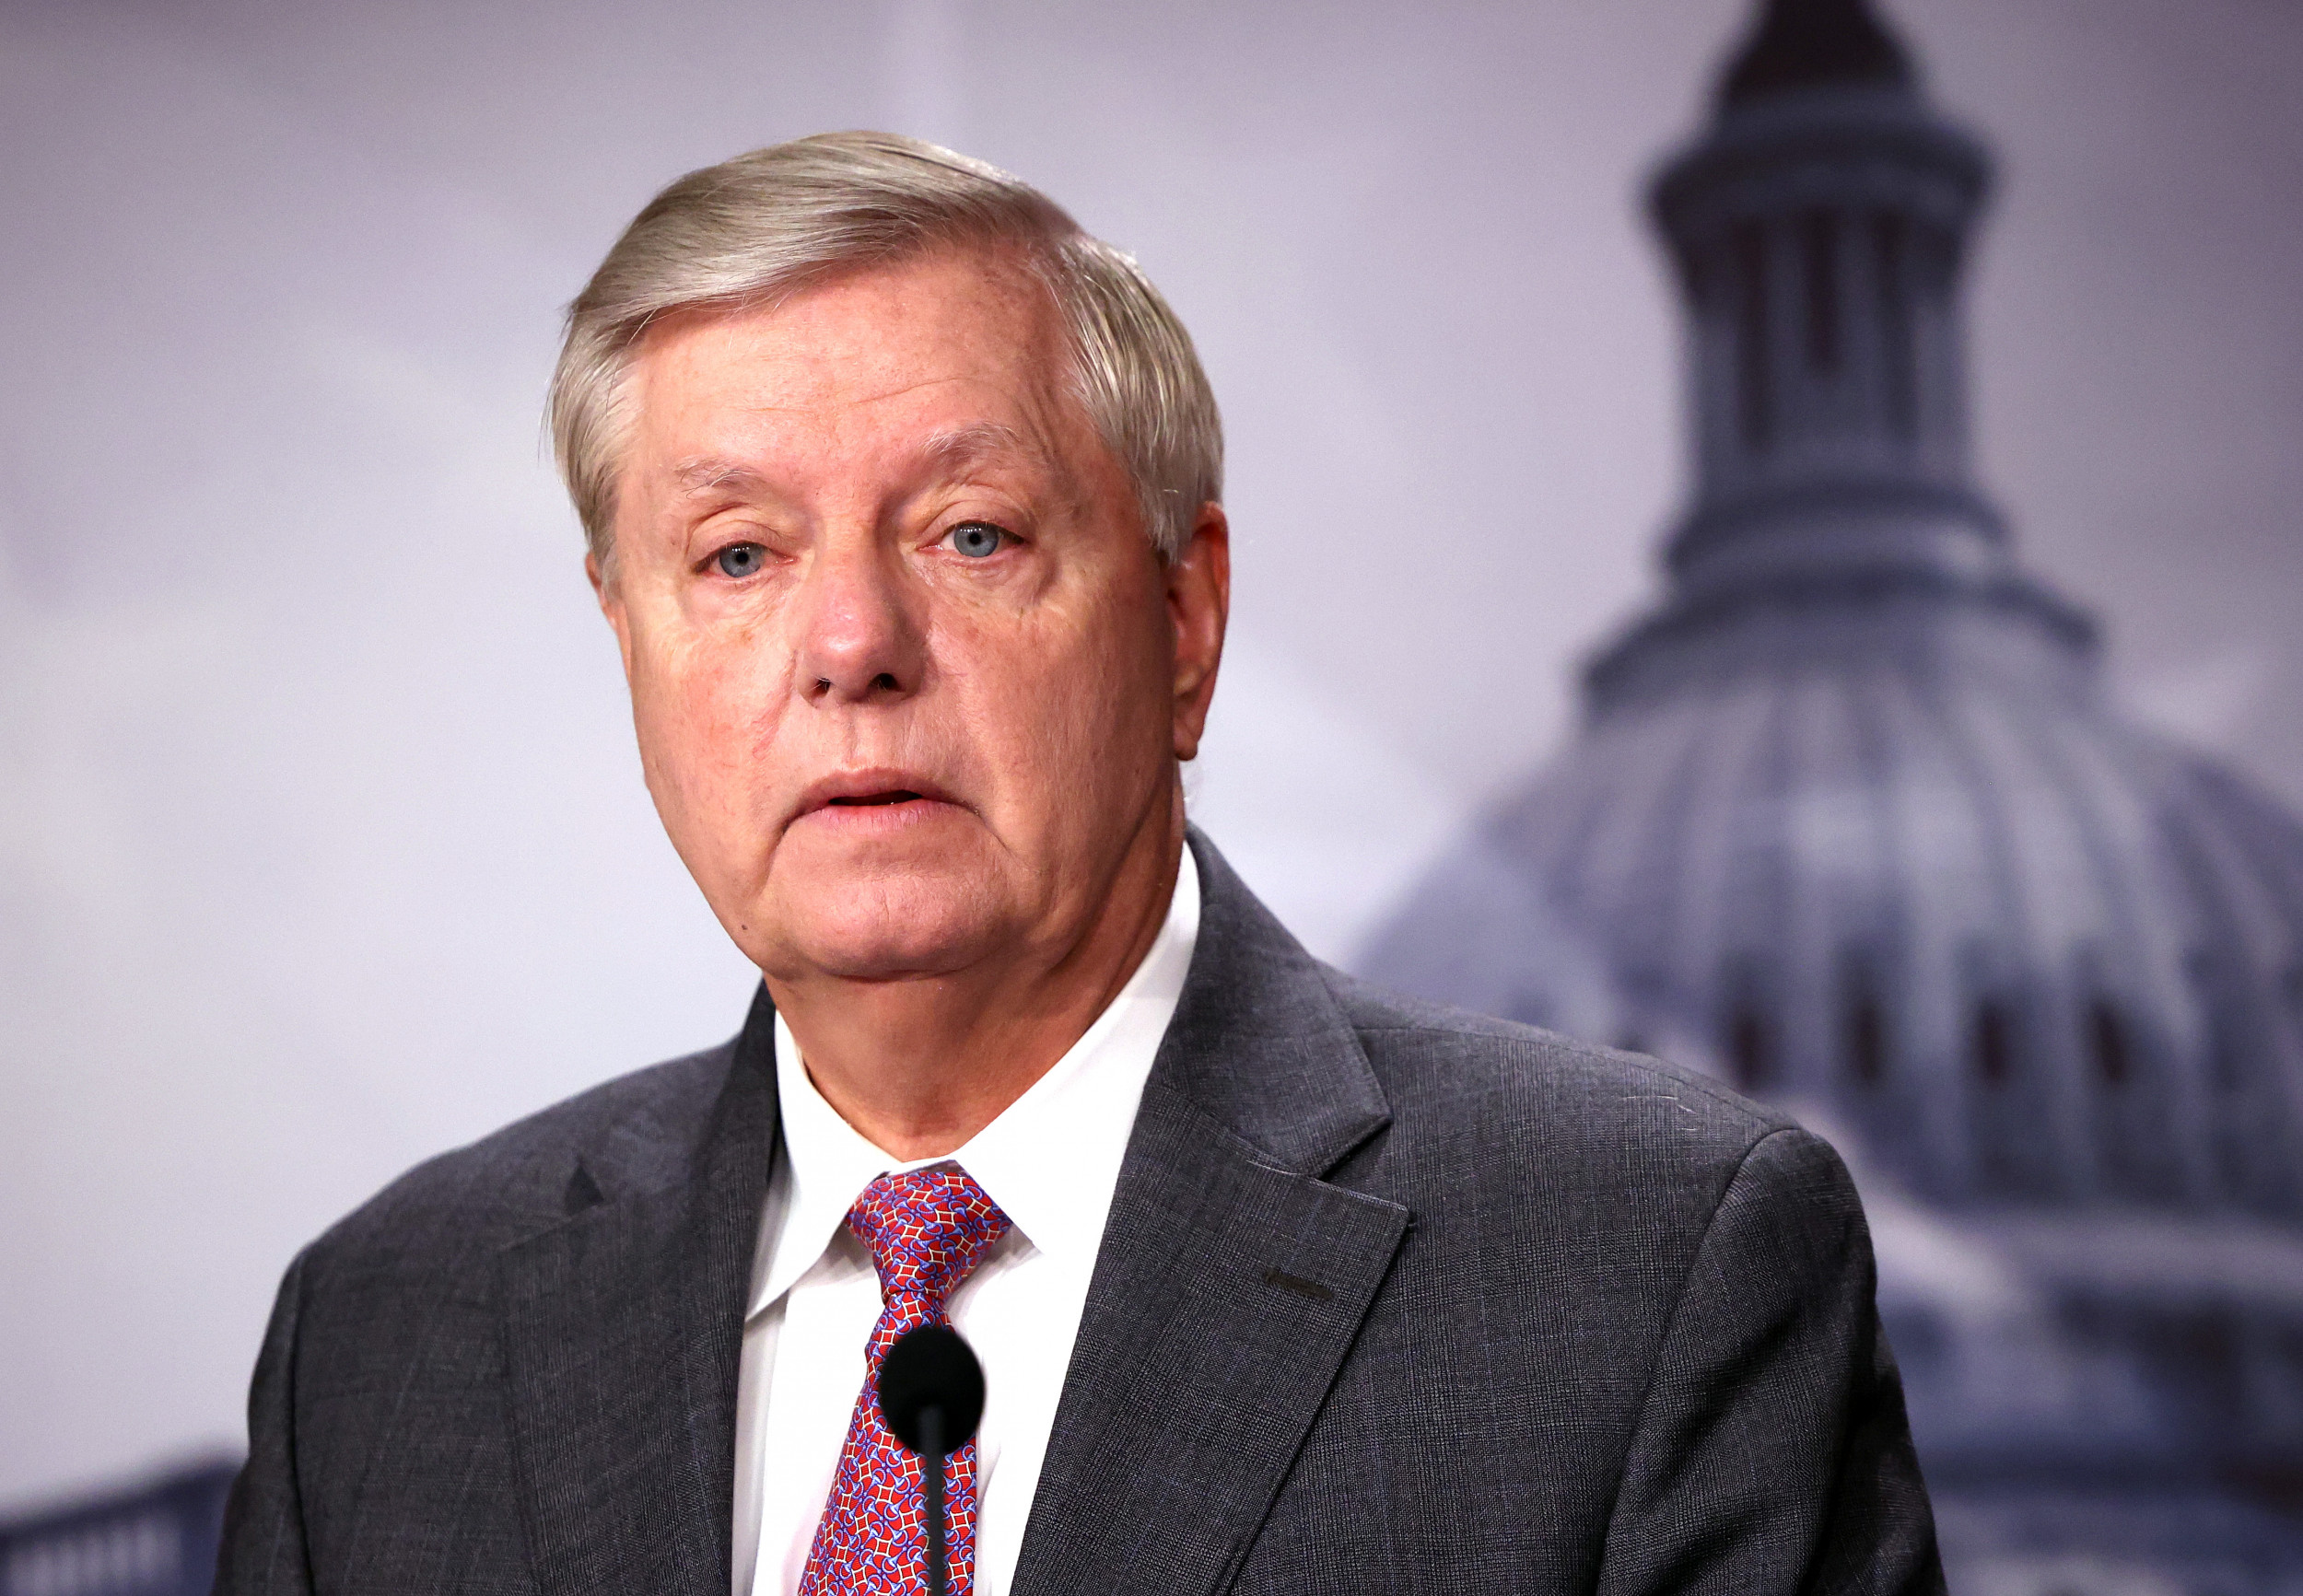 Lindsey Graham Has COVID-19, Says He's Grateful He Got Vaccinated